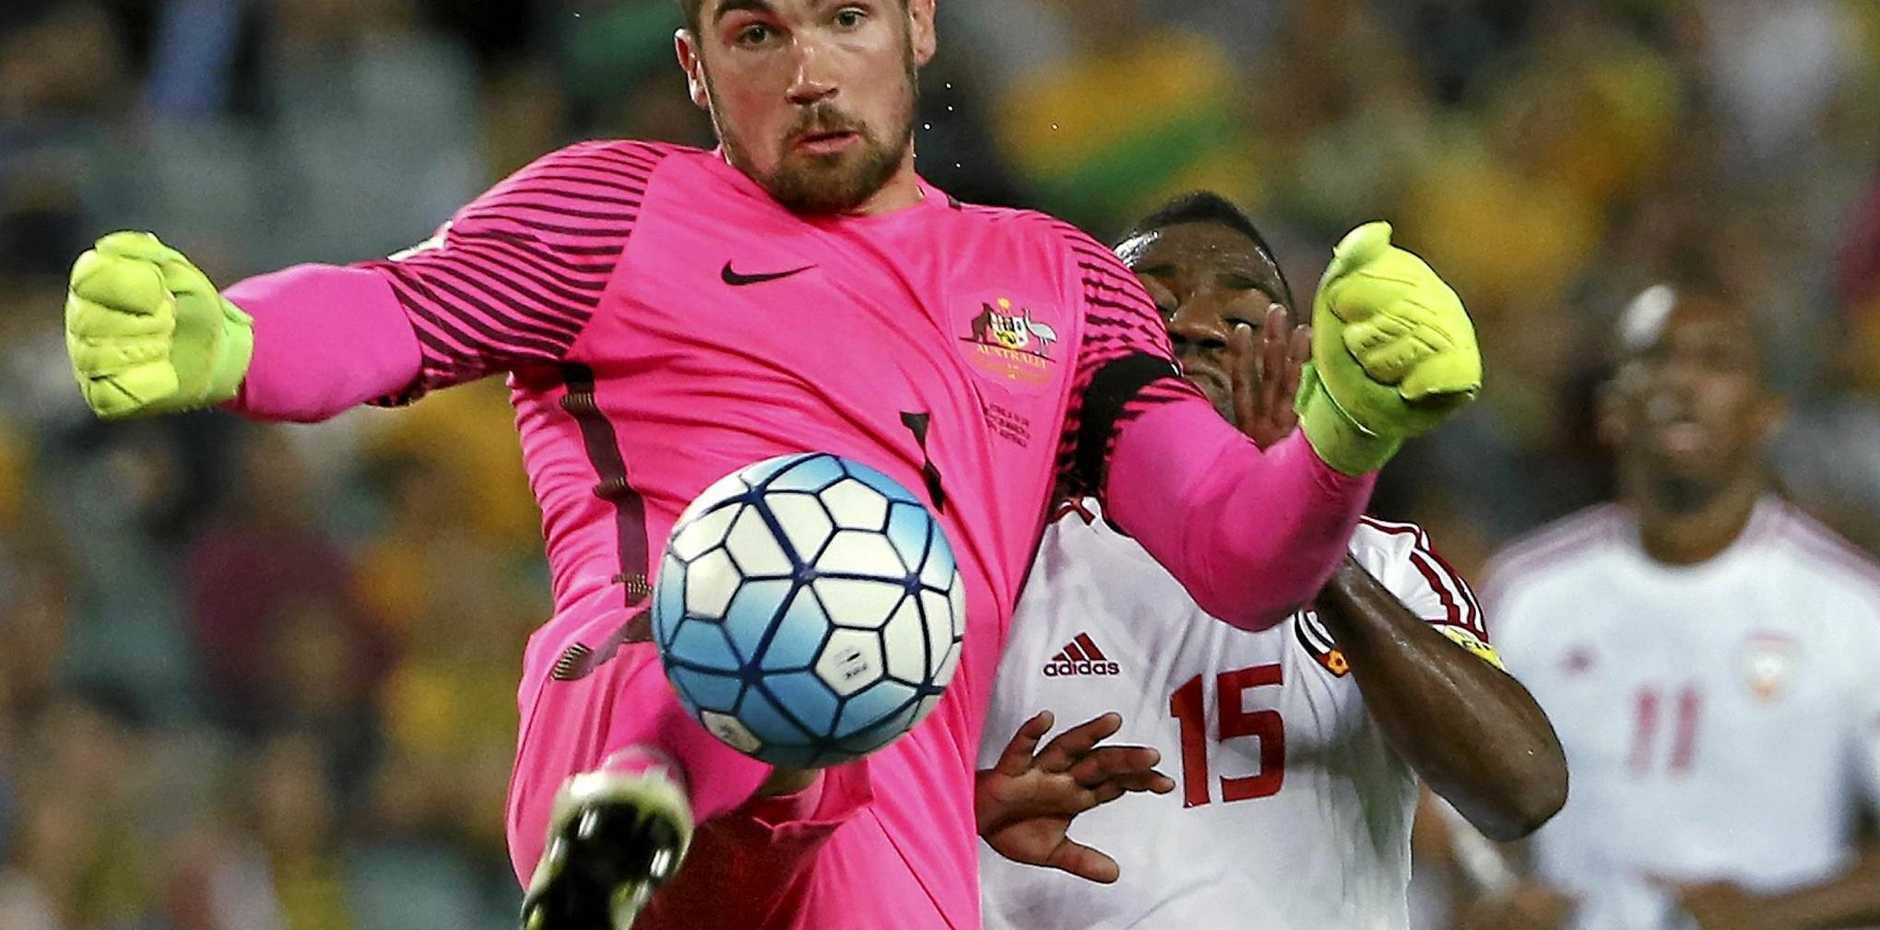 Goalkeeper Mathew Ryan playing for the Socceroos.